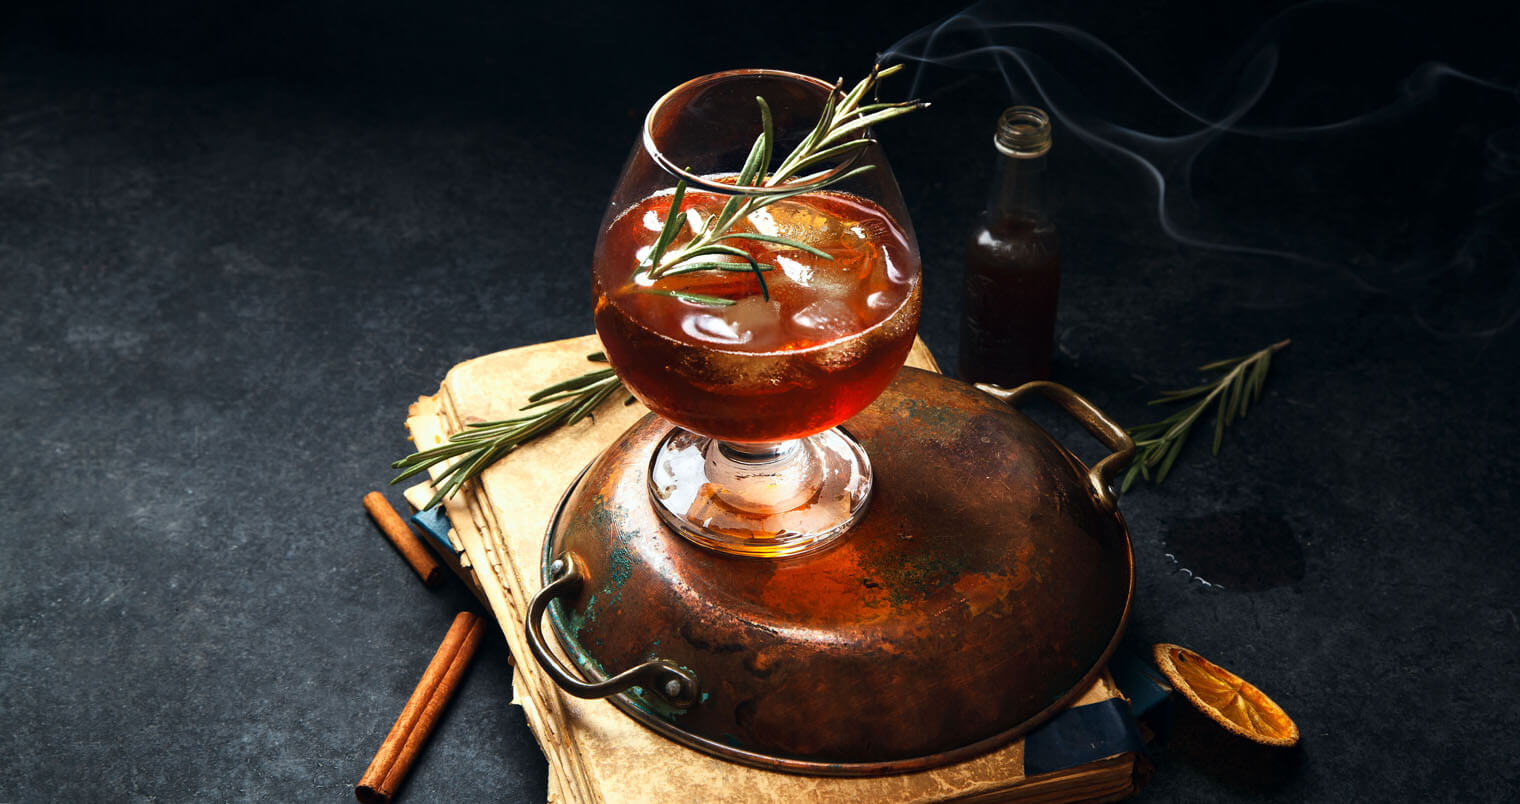 Mixing with Rosemary, cocktail with herb garnish, featured image